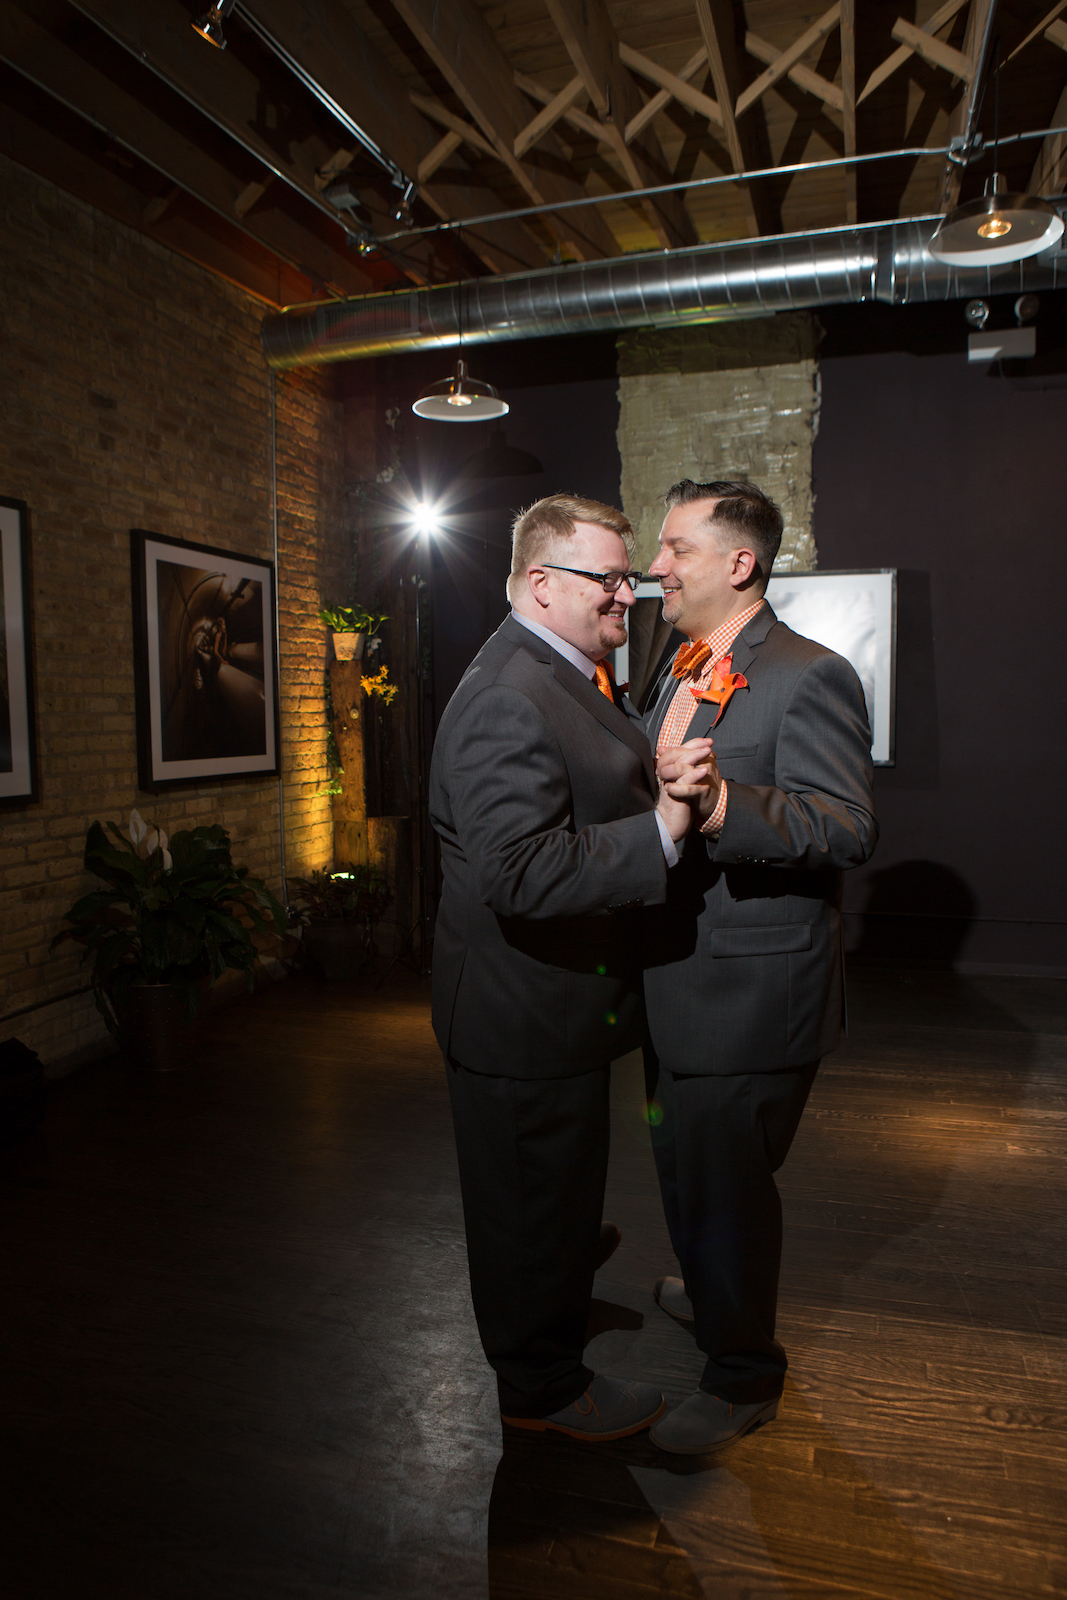 Two Grooms share their first dance at their Chicago wedding. © Cristina G Photography